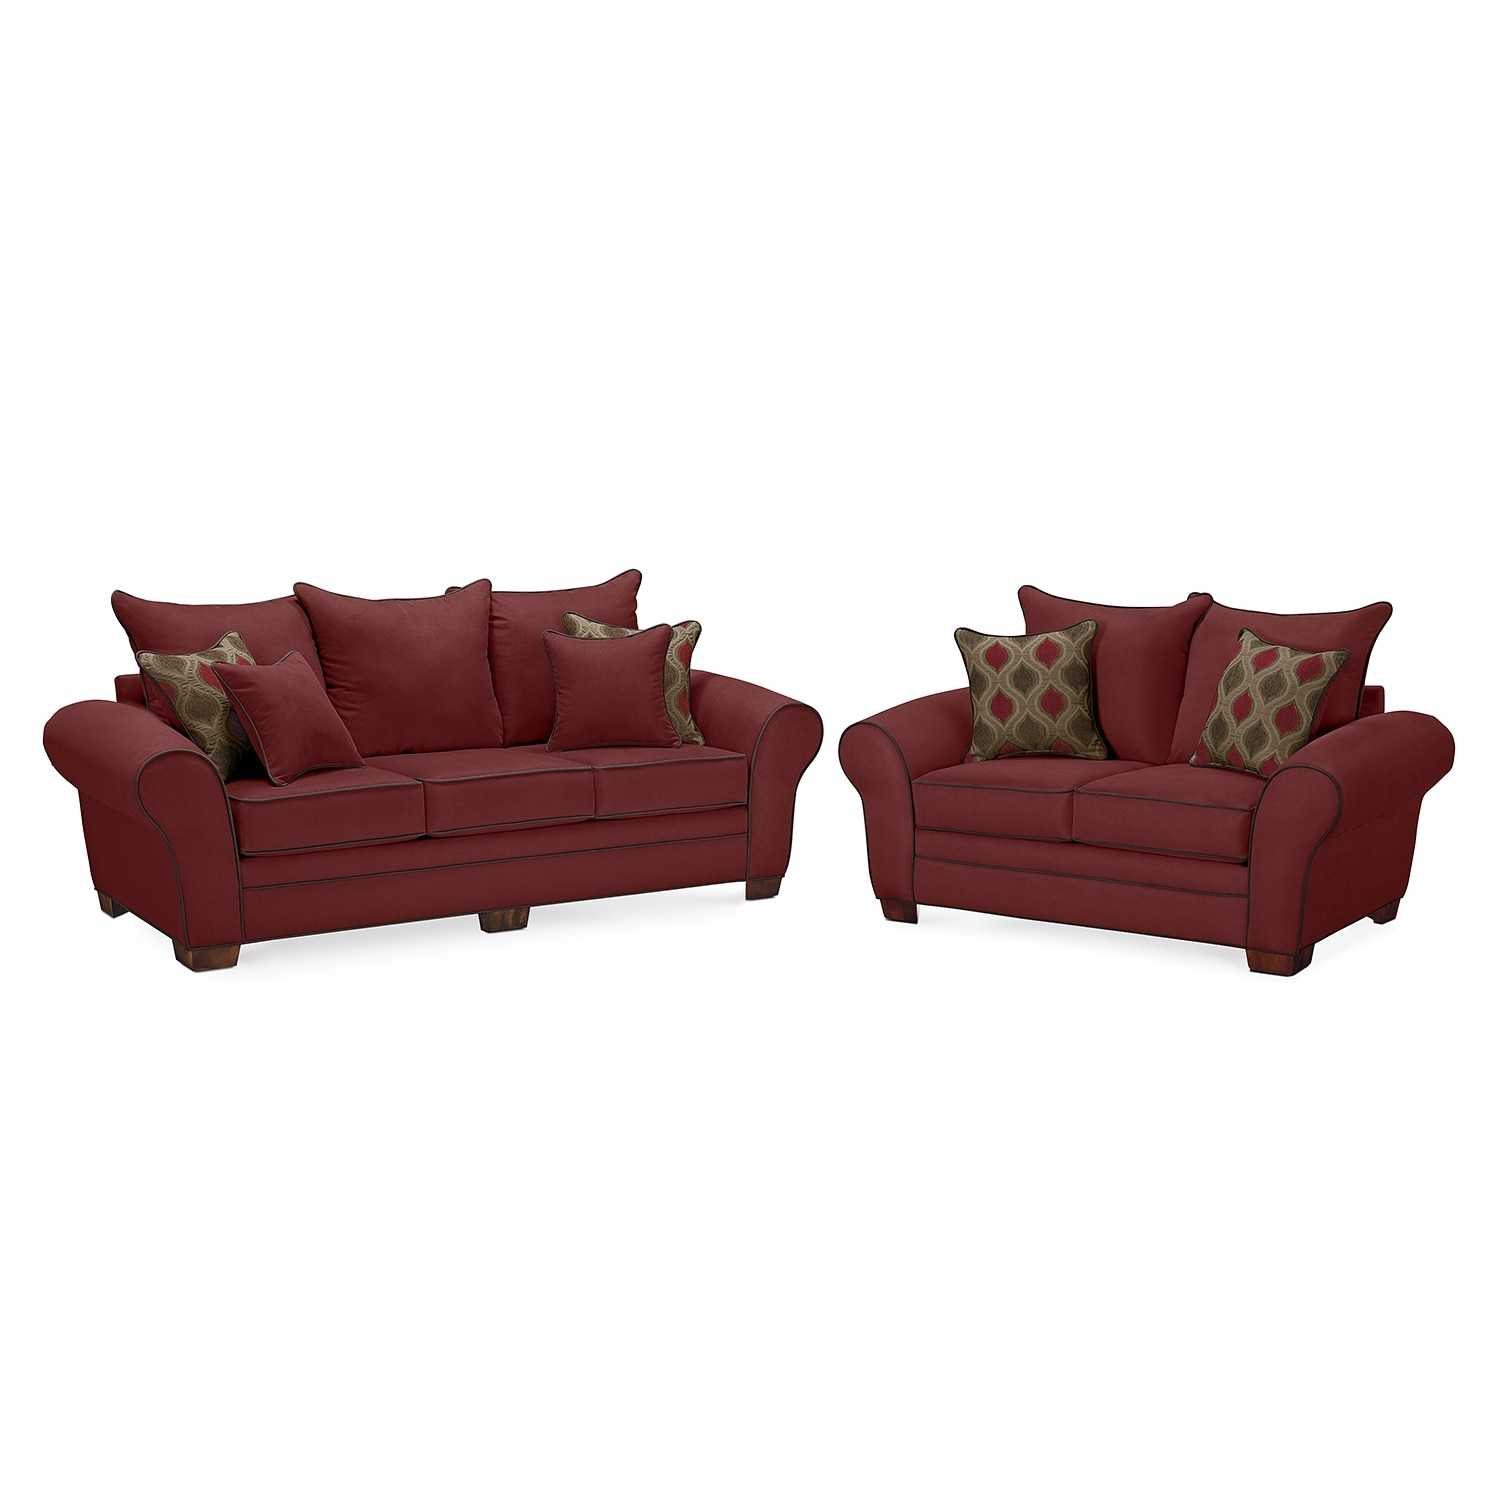 Rendezvous Sofa and Loveseat Set - Wine